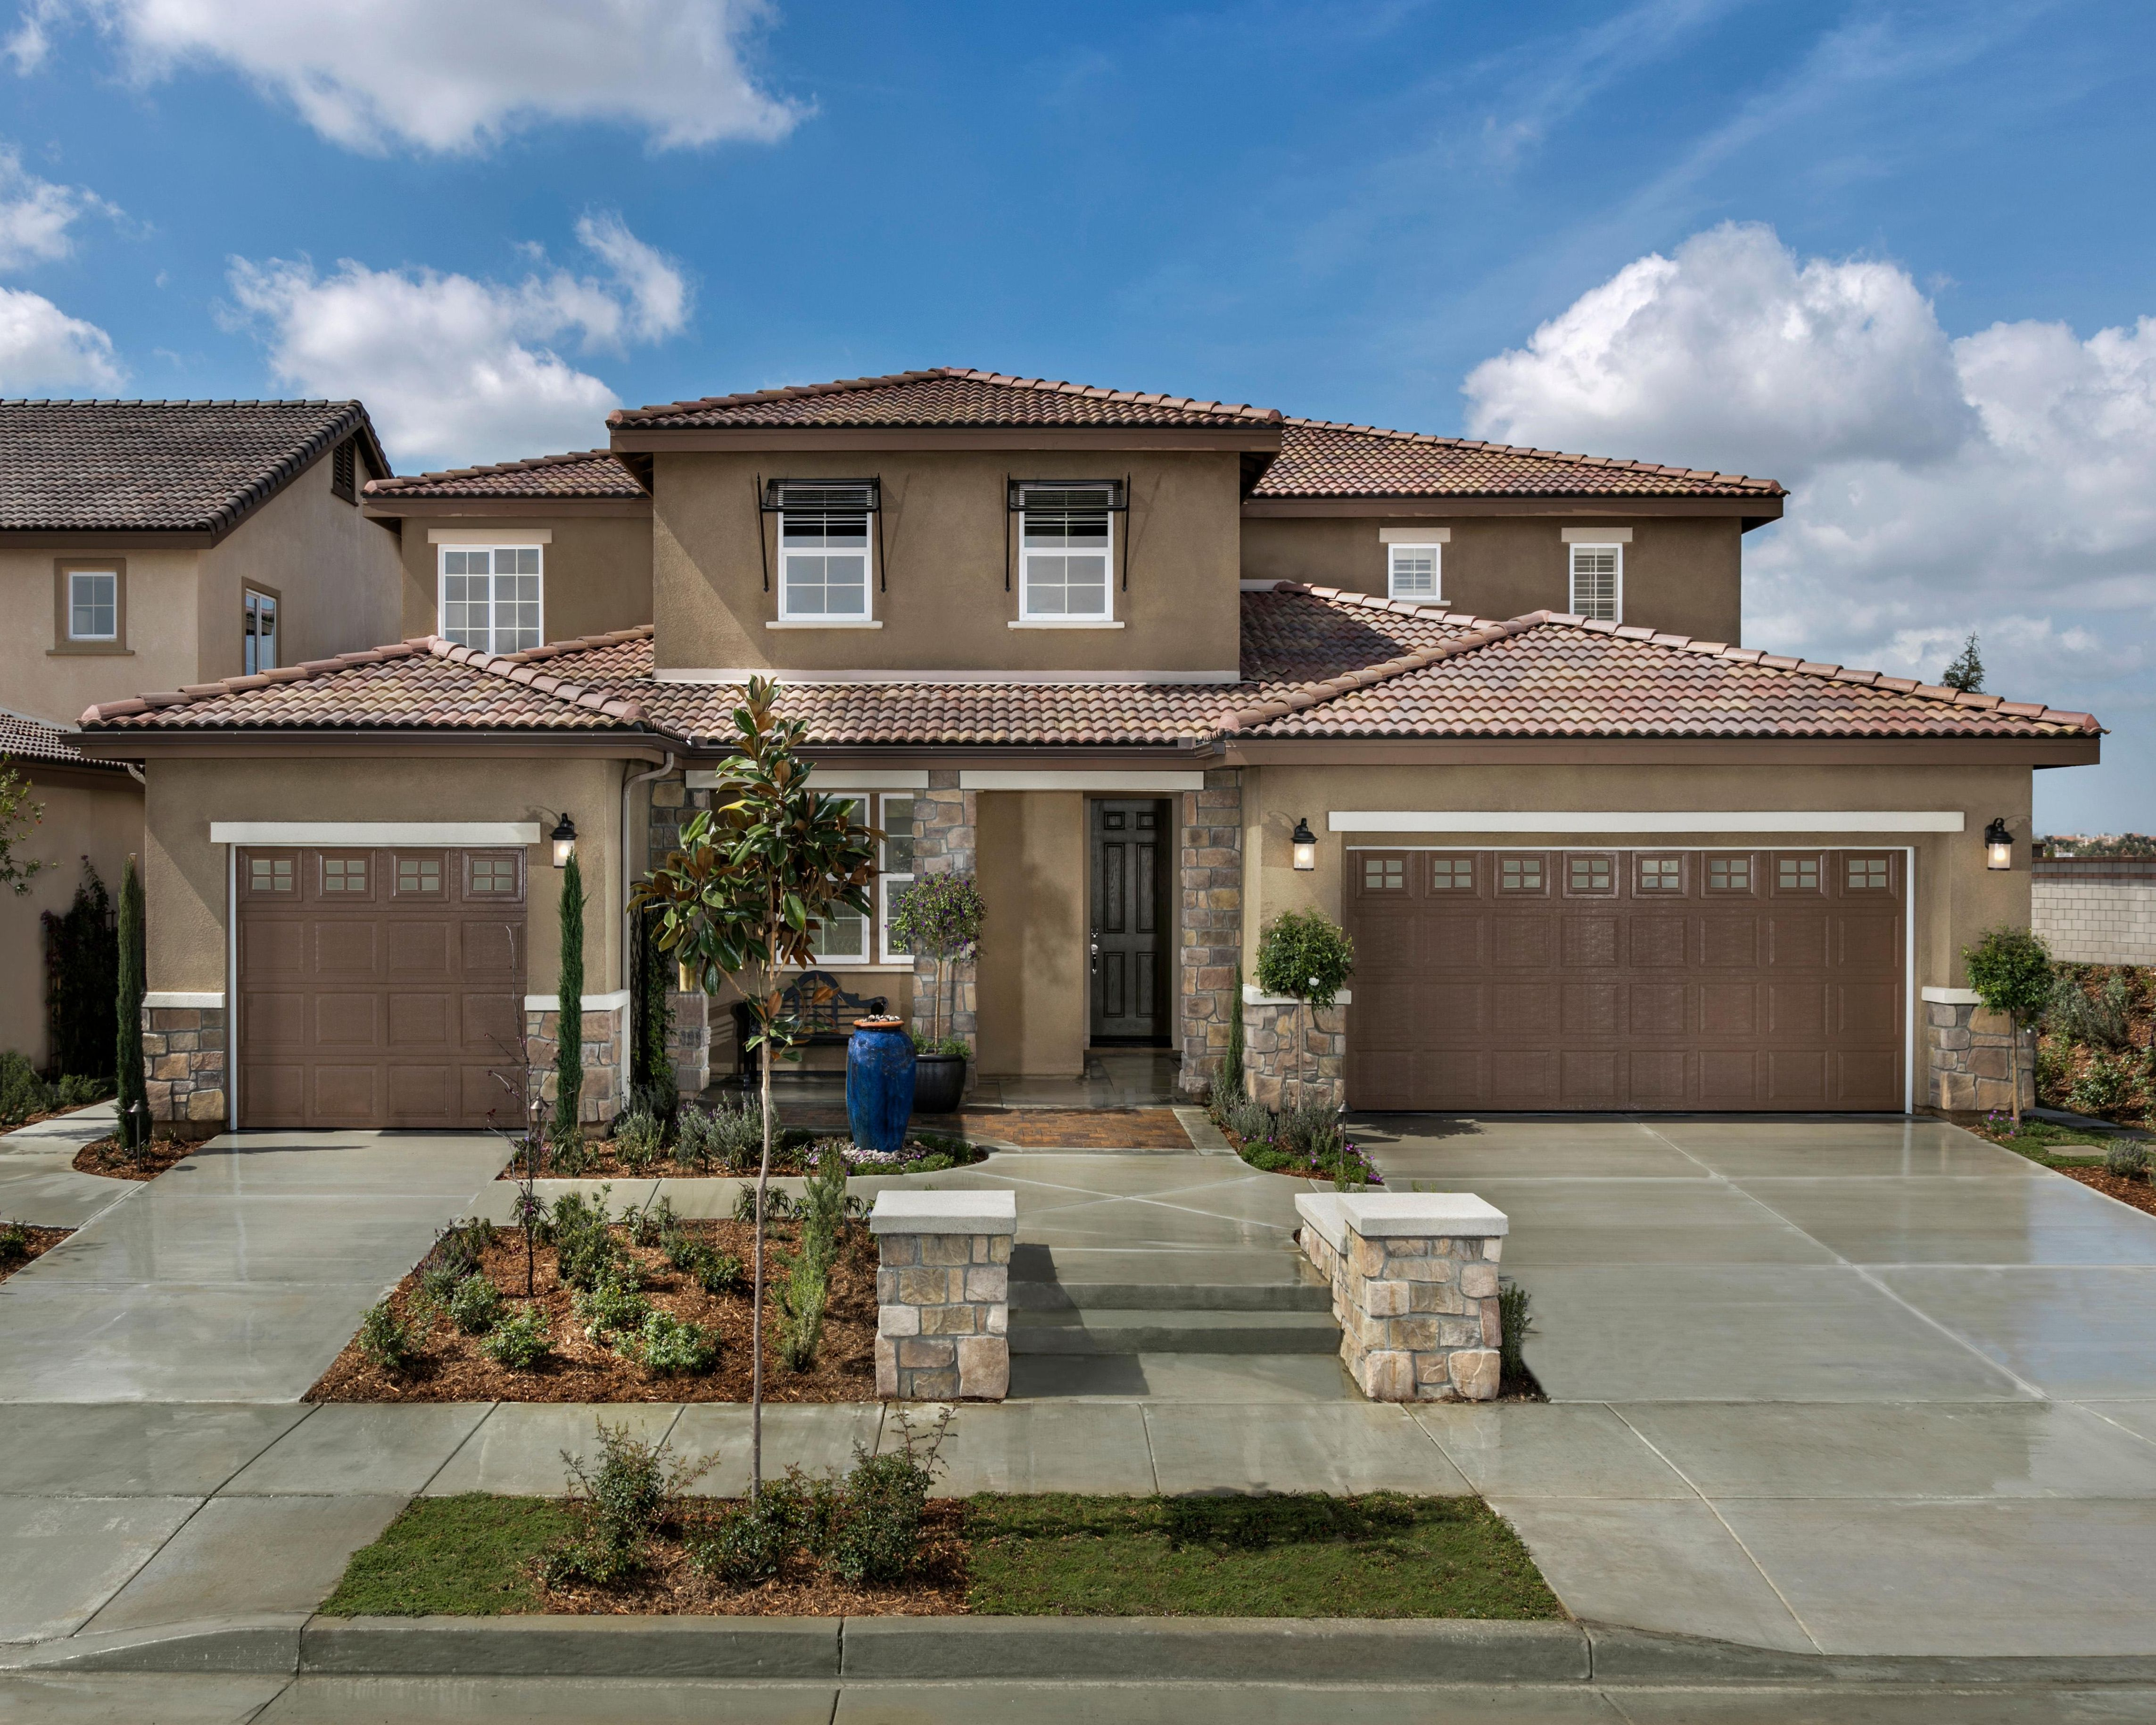 Two Garage Home In Jurupa Valley Ca Find Your Peace Of Mind At Tranquility Our New Community At Riverbend In Jurupa Va Lennar New Homes New Home Communities